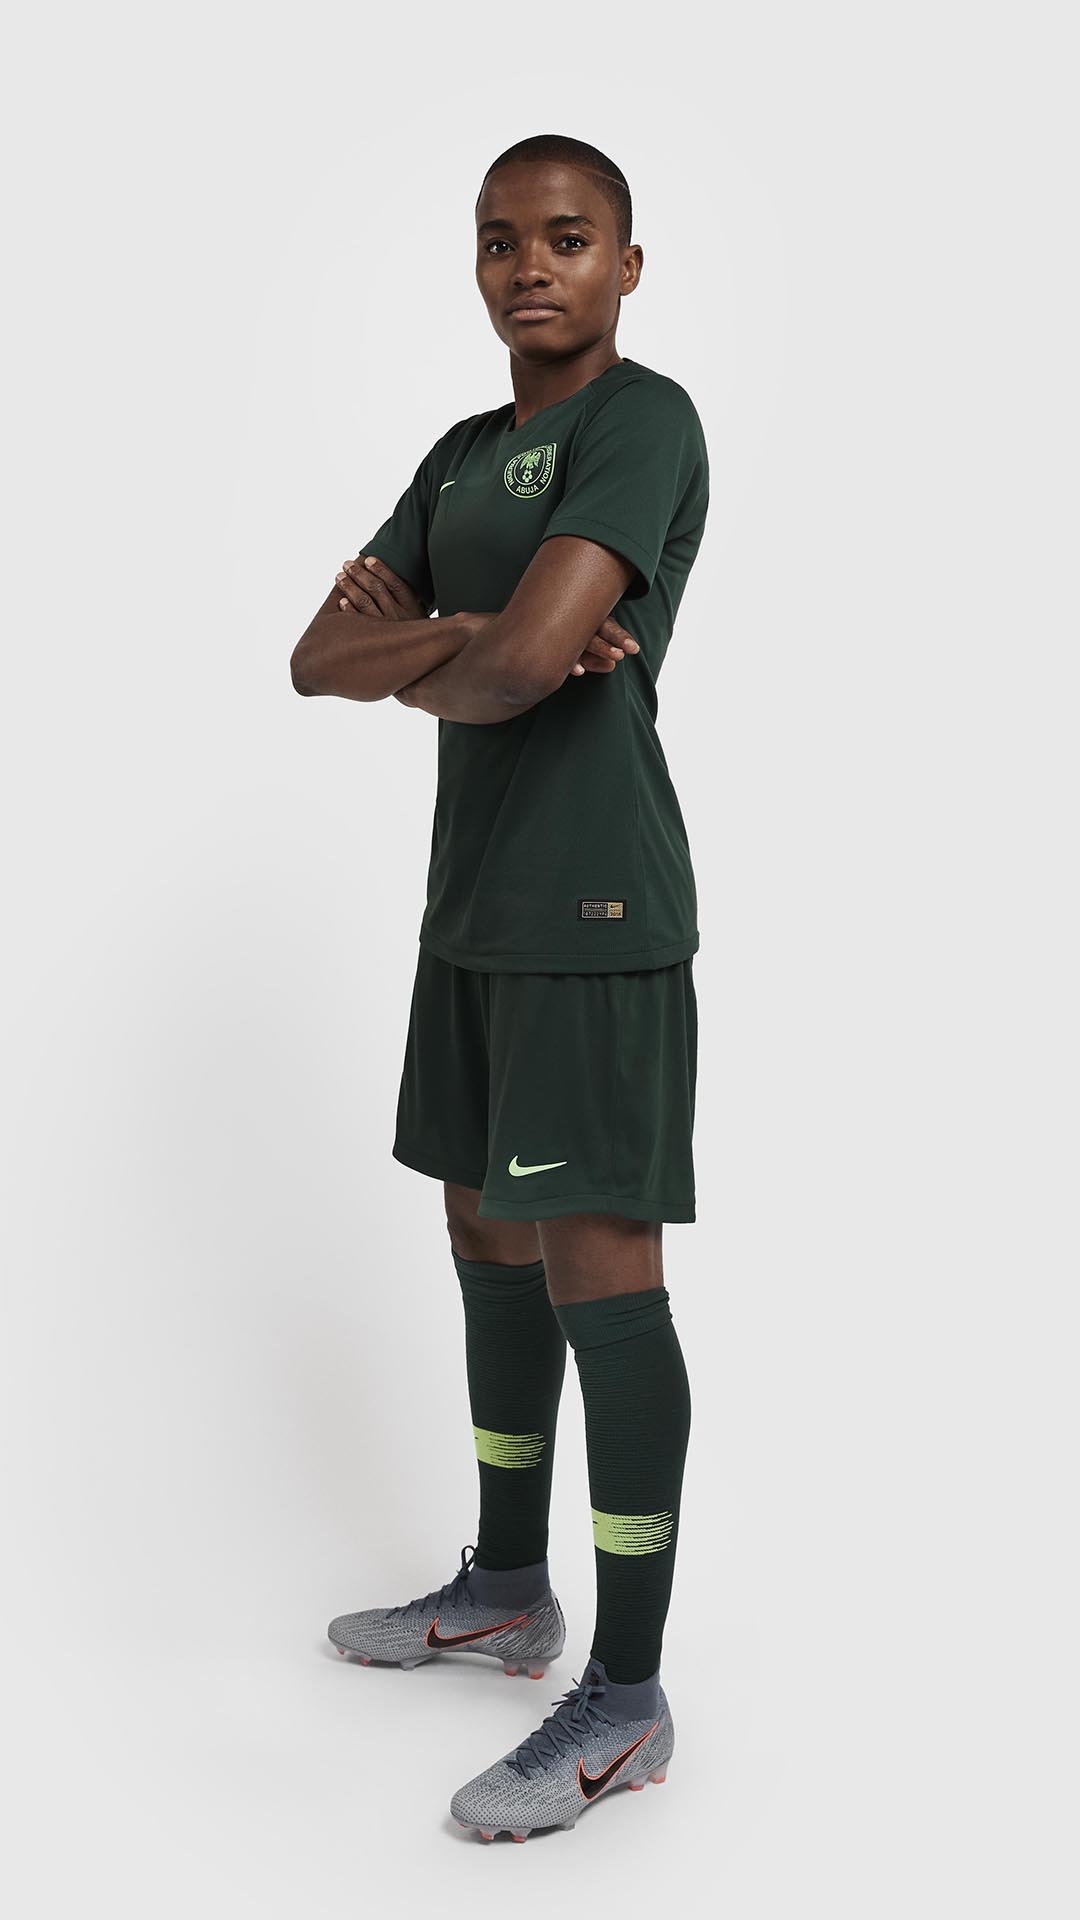 Nike_National_Team_Kit_Nigeria_7.jpg